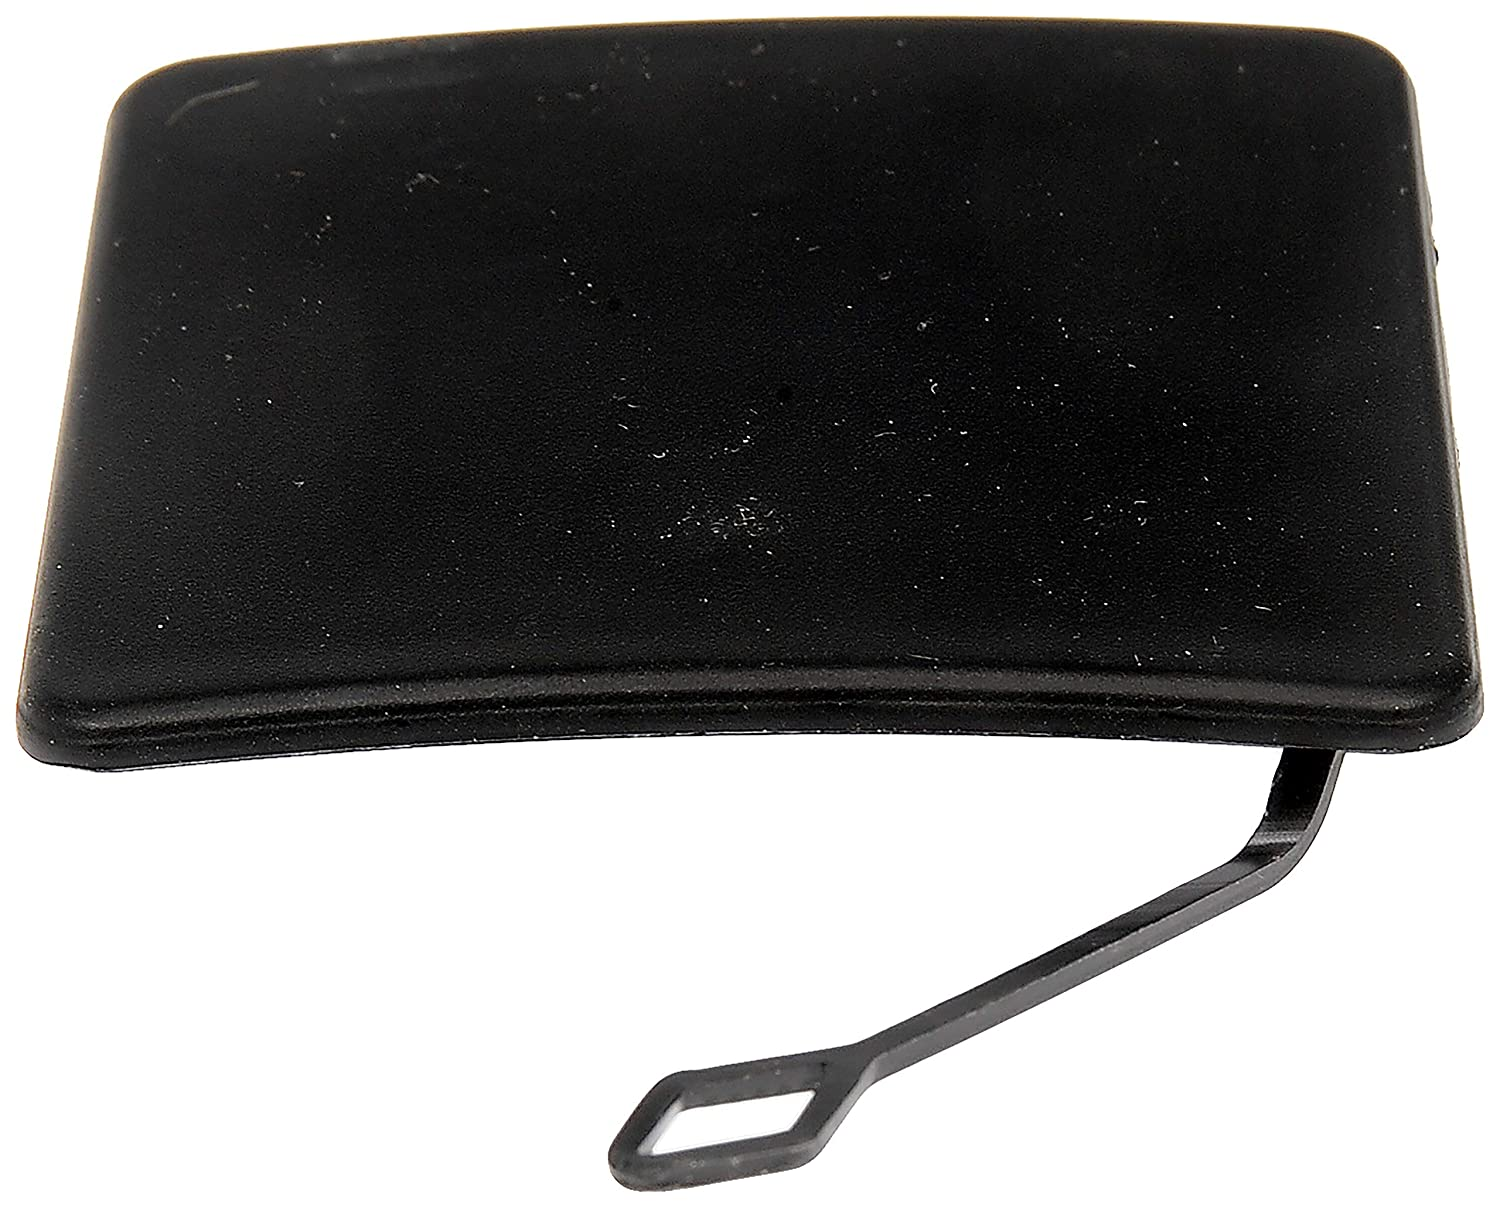 Dorman 47828 Spare Tire Hoist Cover Replacement for Select Cadillac//Chevrolet Models